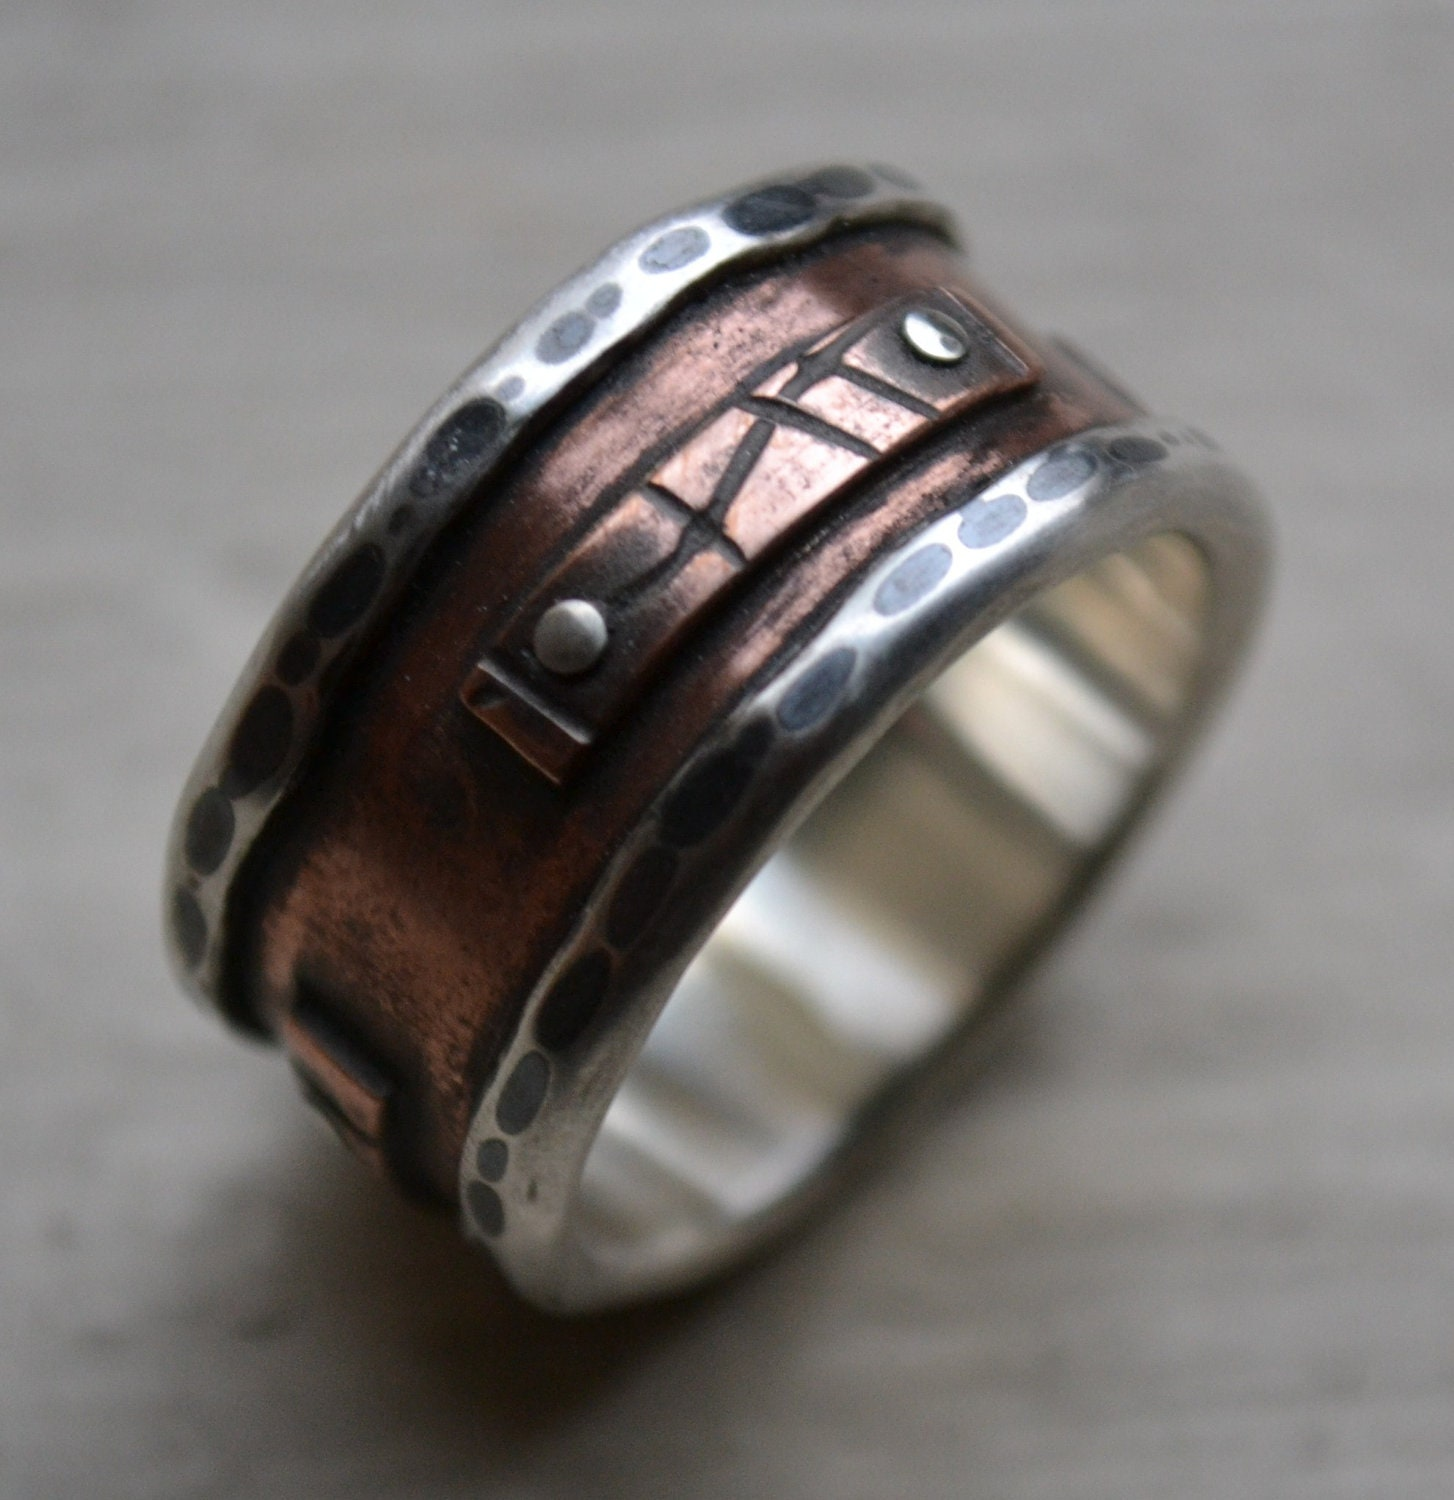 creative and wedding for black image pin unusual result banded rings most ring